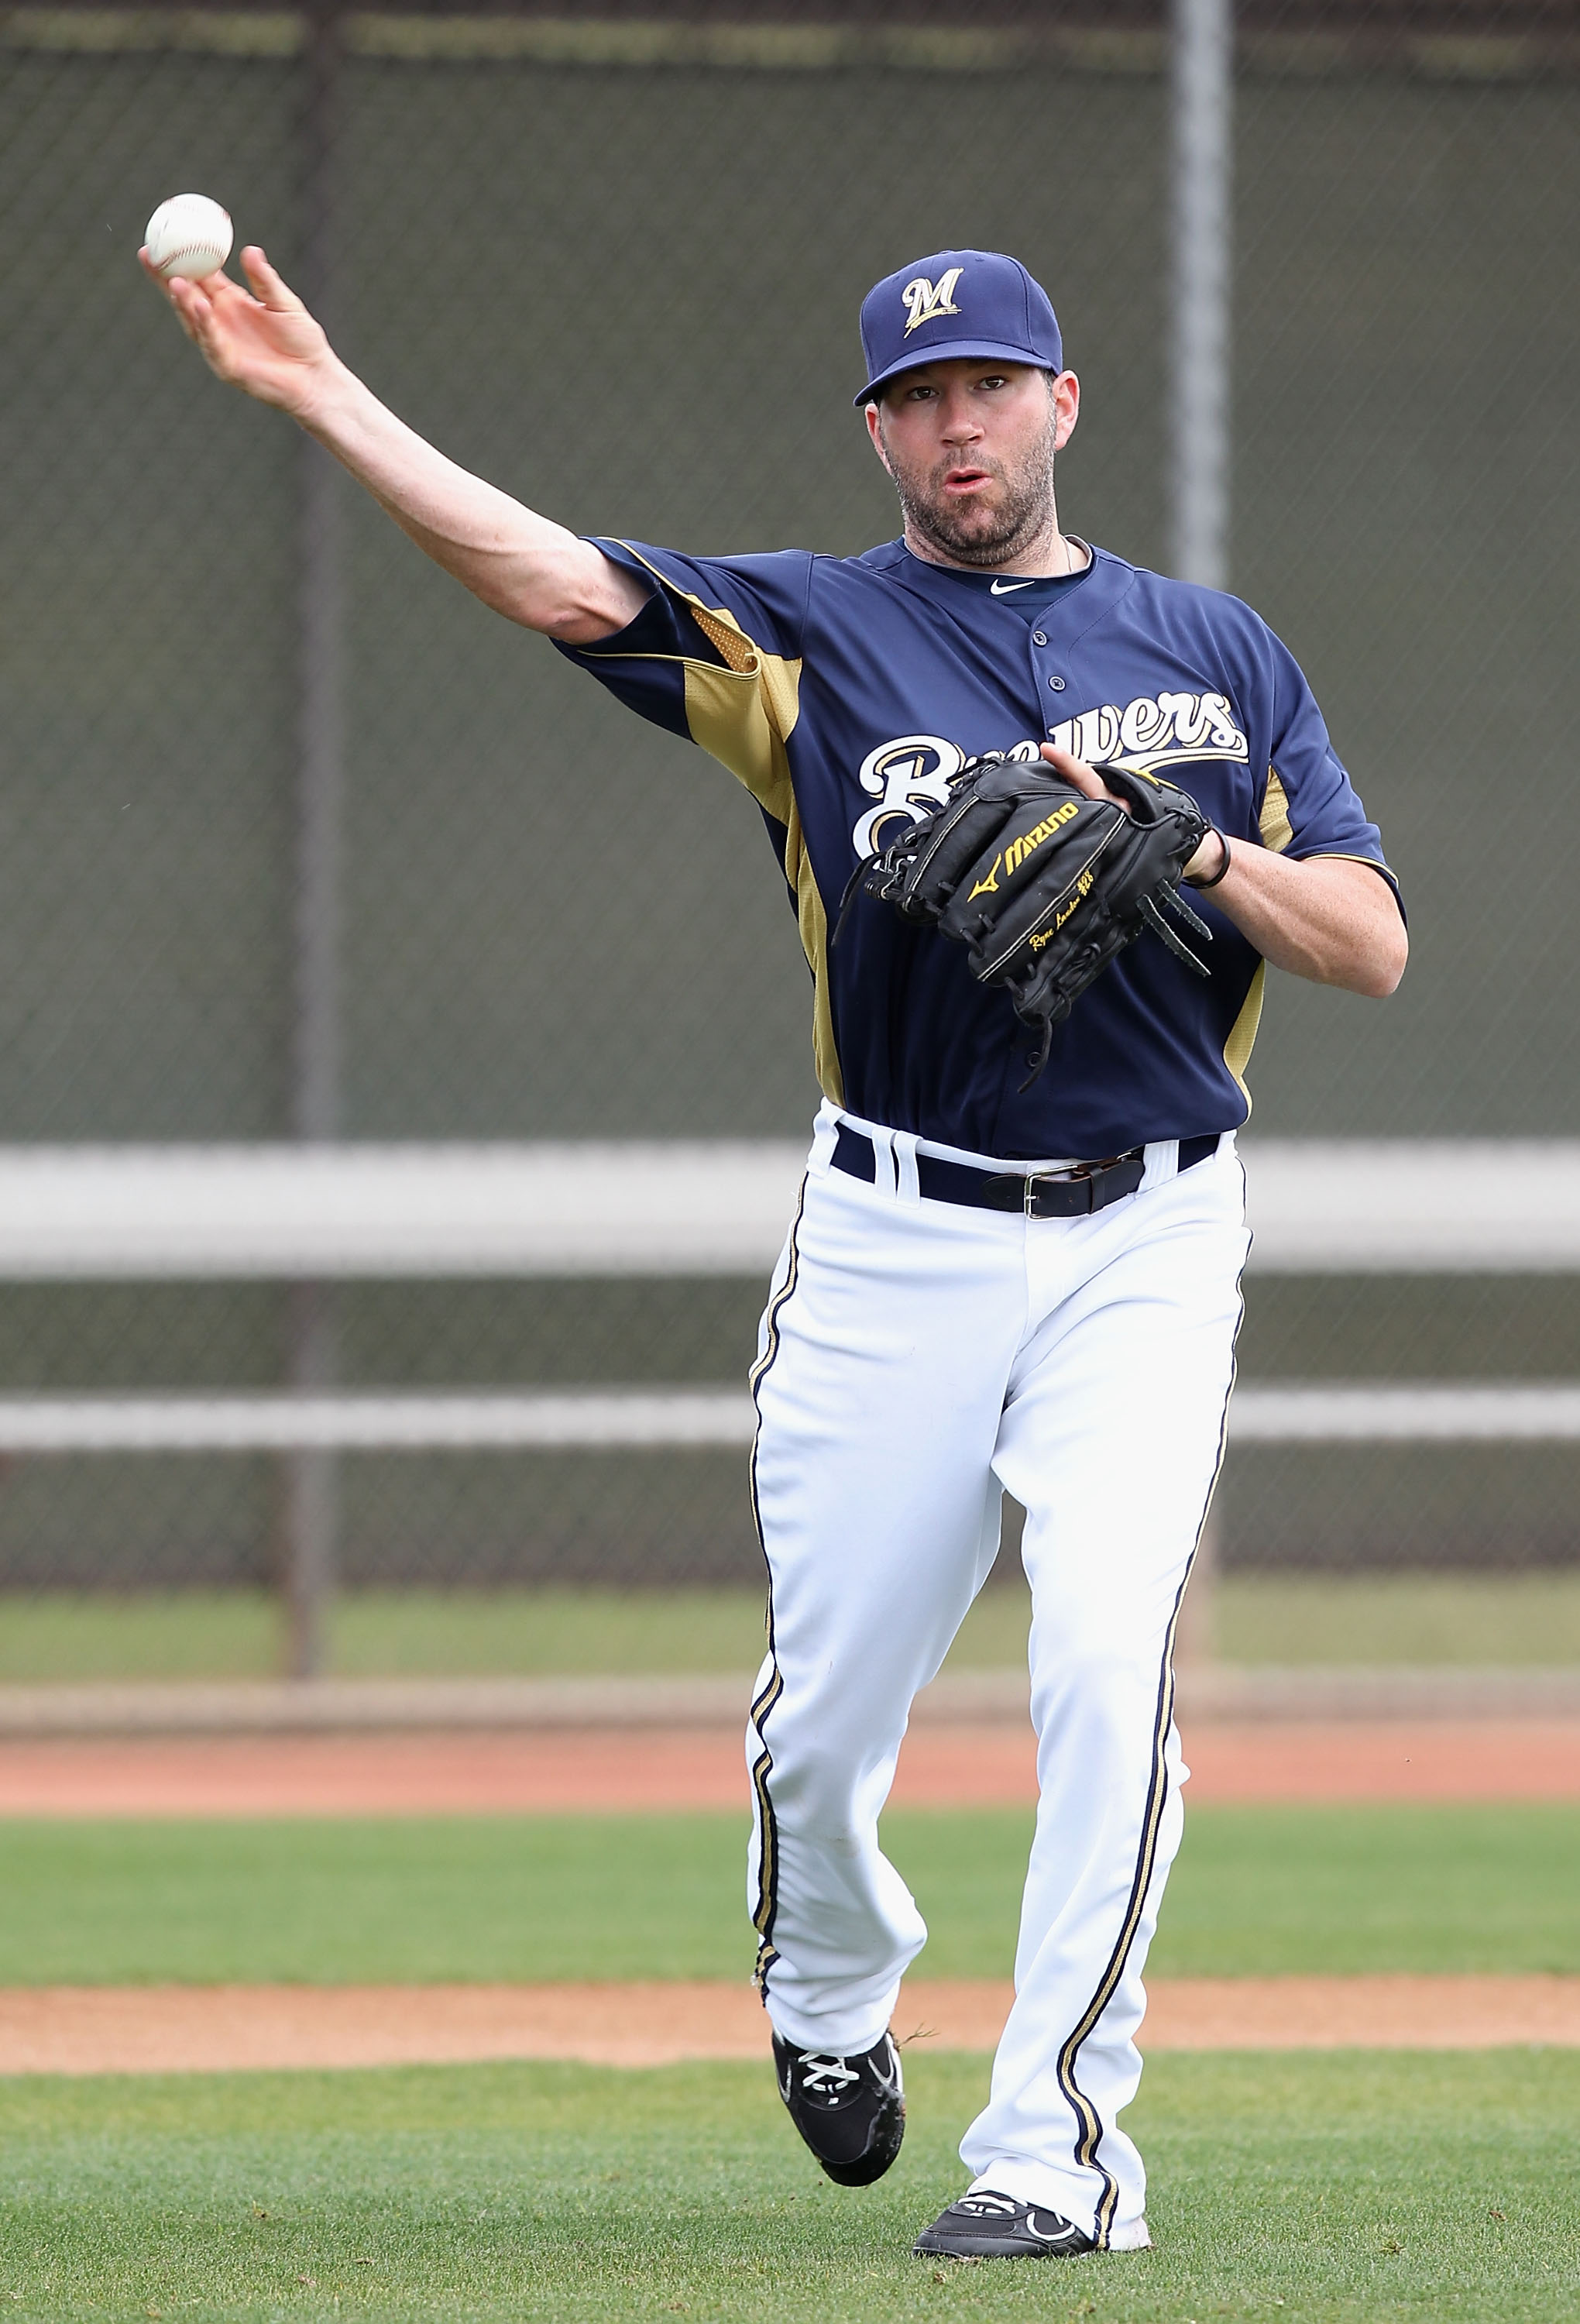 PHOENIX, AZ - FEBRUARY 18:  Pitcher Shaun Marcum #18 of the Milwaukee Brewers participates in fielding drills during a MLB spring training practice at Maryvale Baseball Park on February 18, 2011 in Phoenix, Arizona.  (Photo by Christian Petersen/Getty Ima